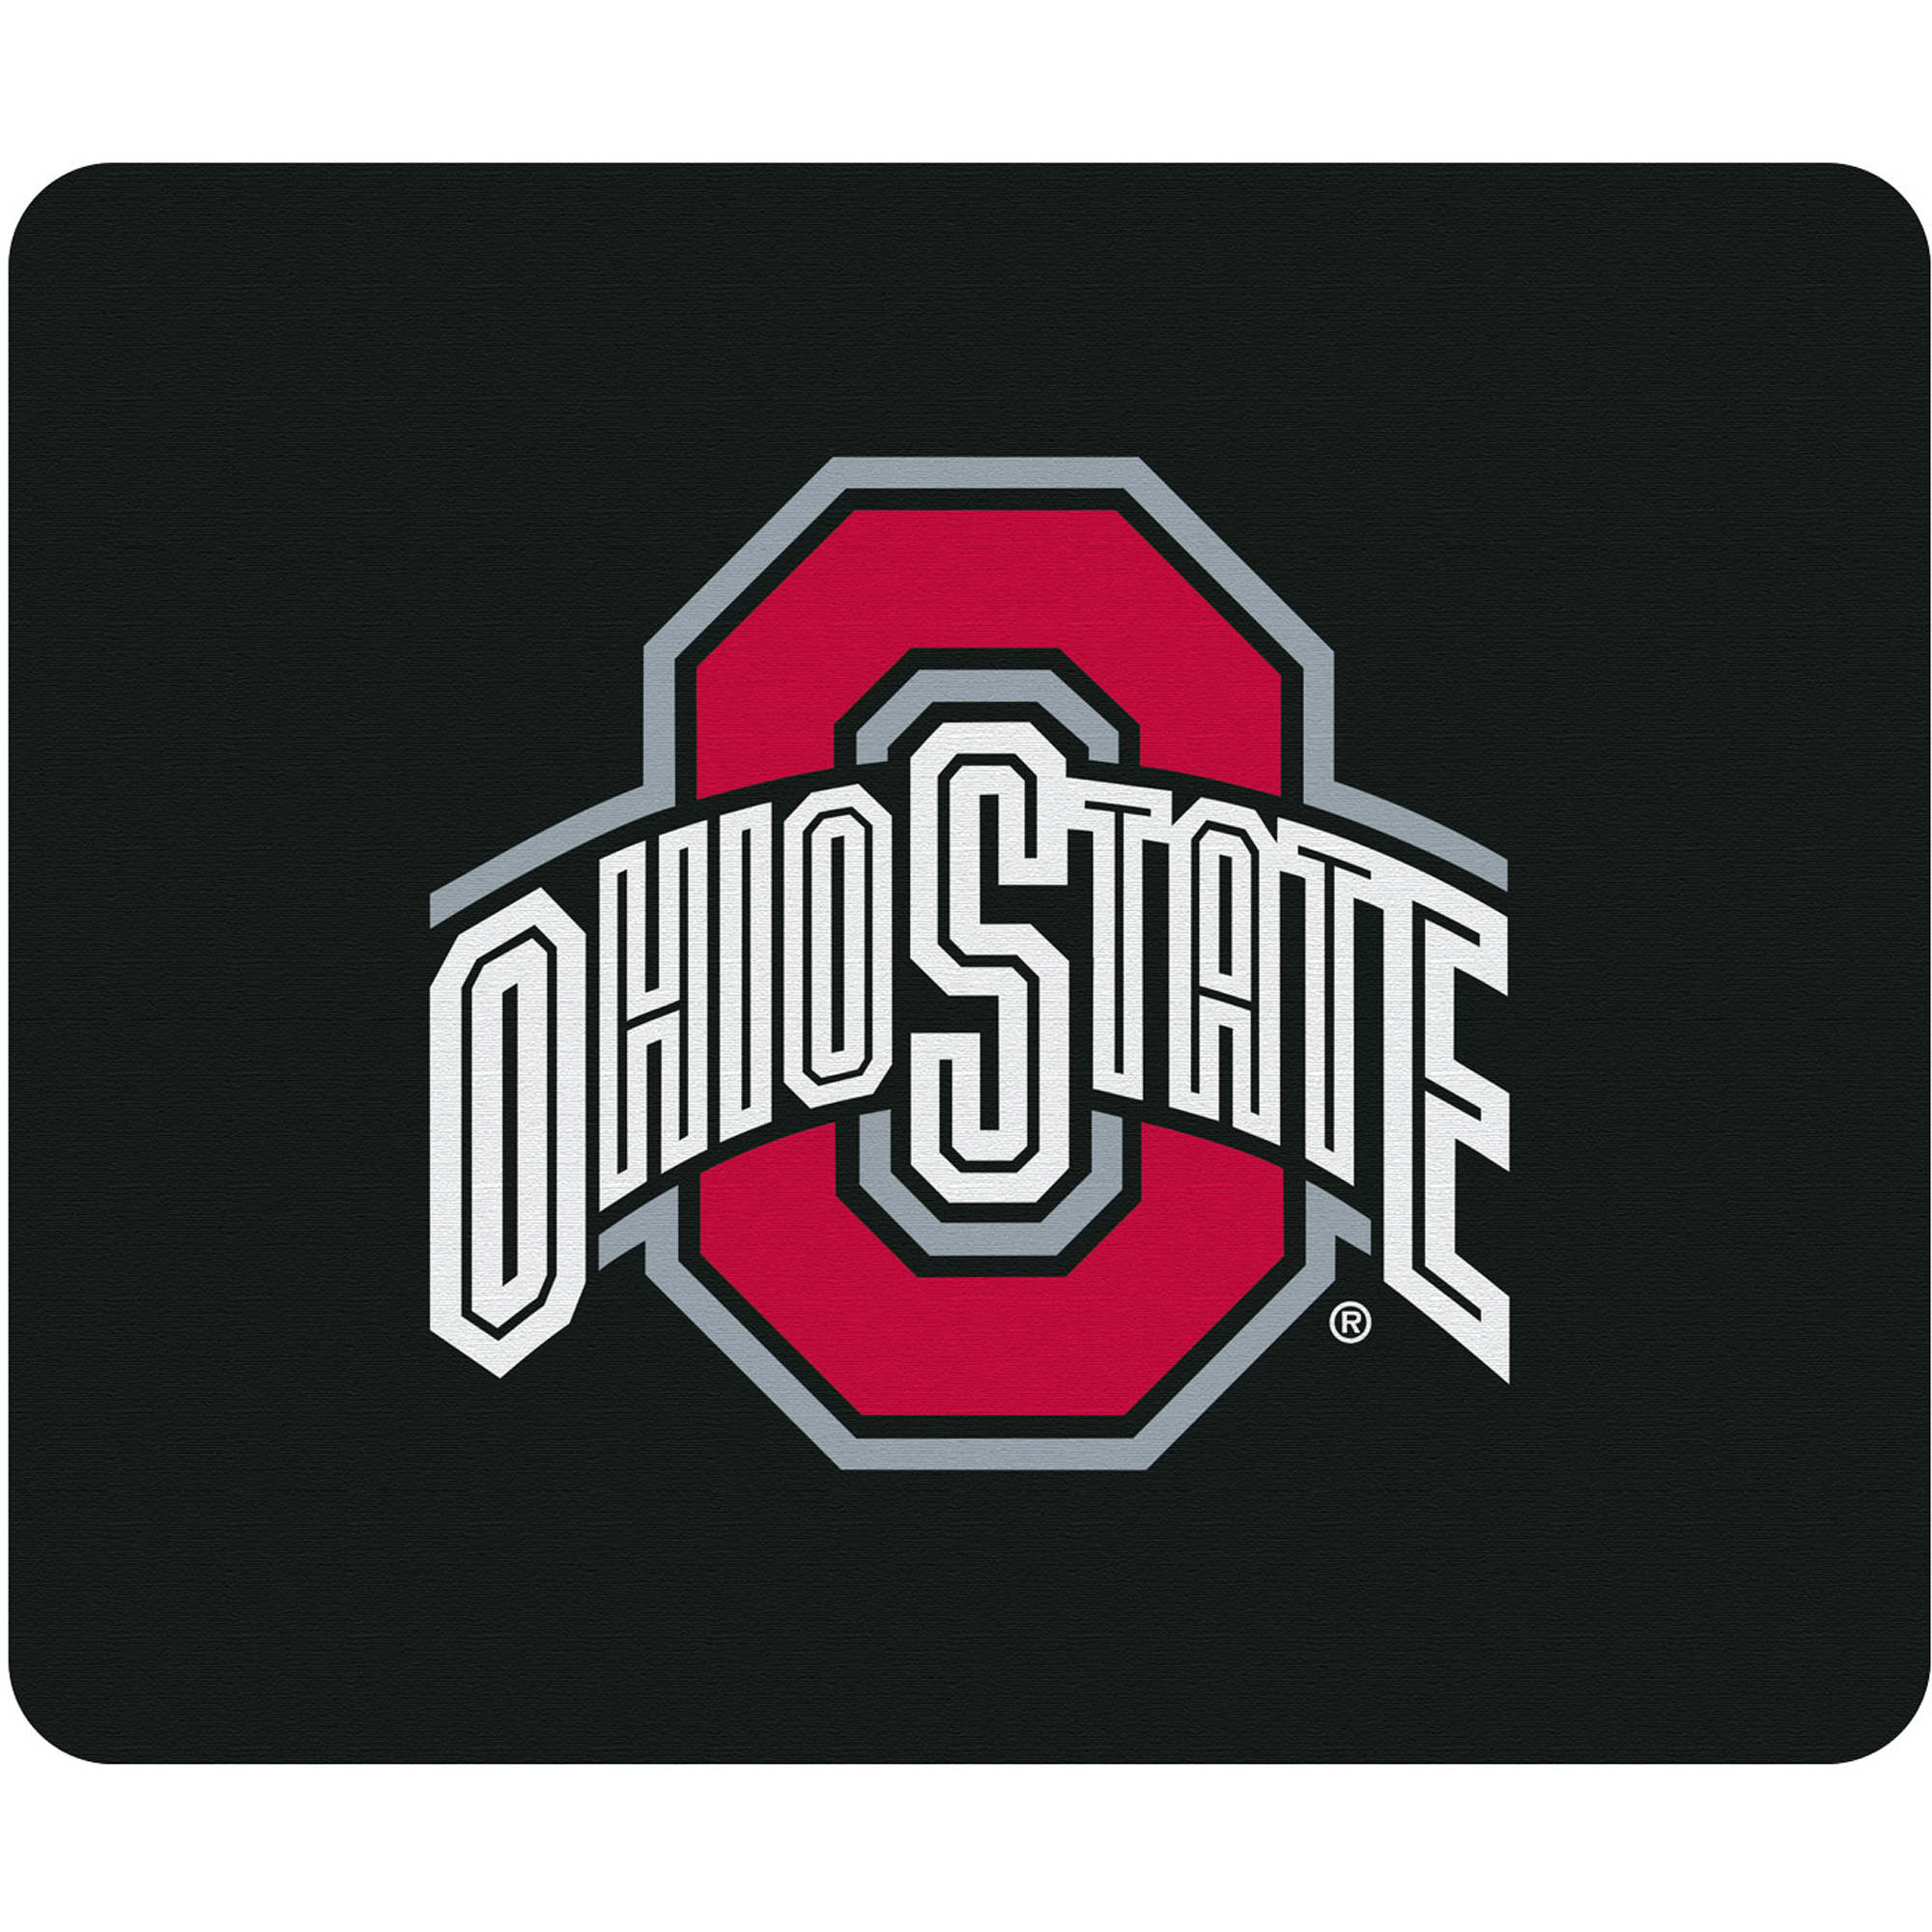 "8.5"" Classic Mouse Pad, Ohio State University"